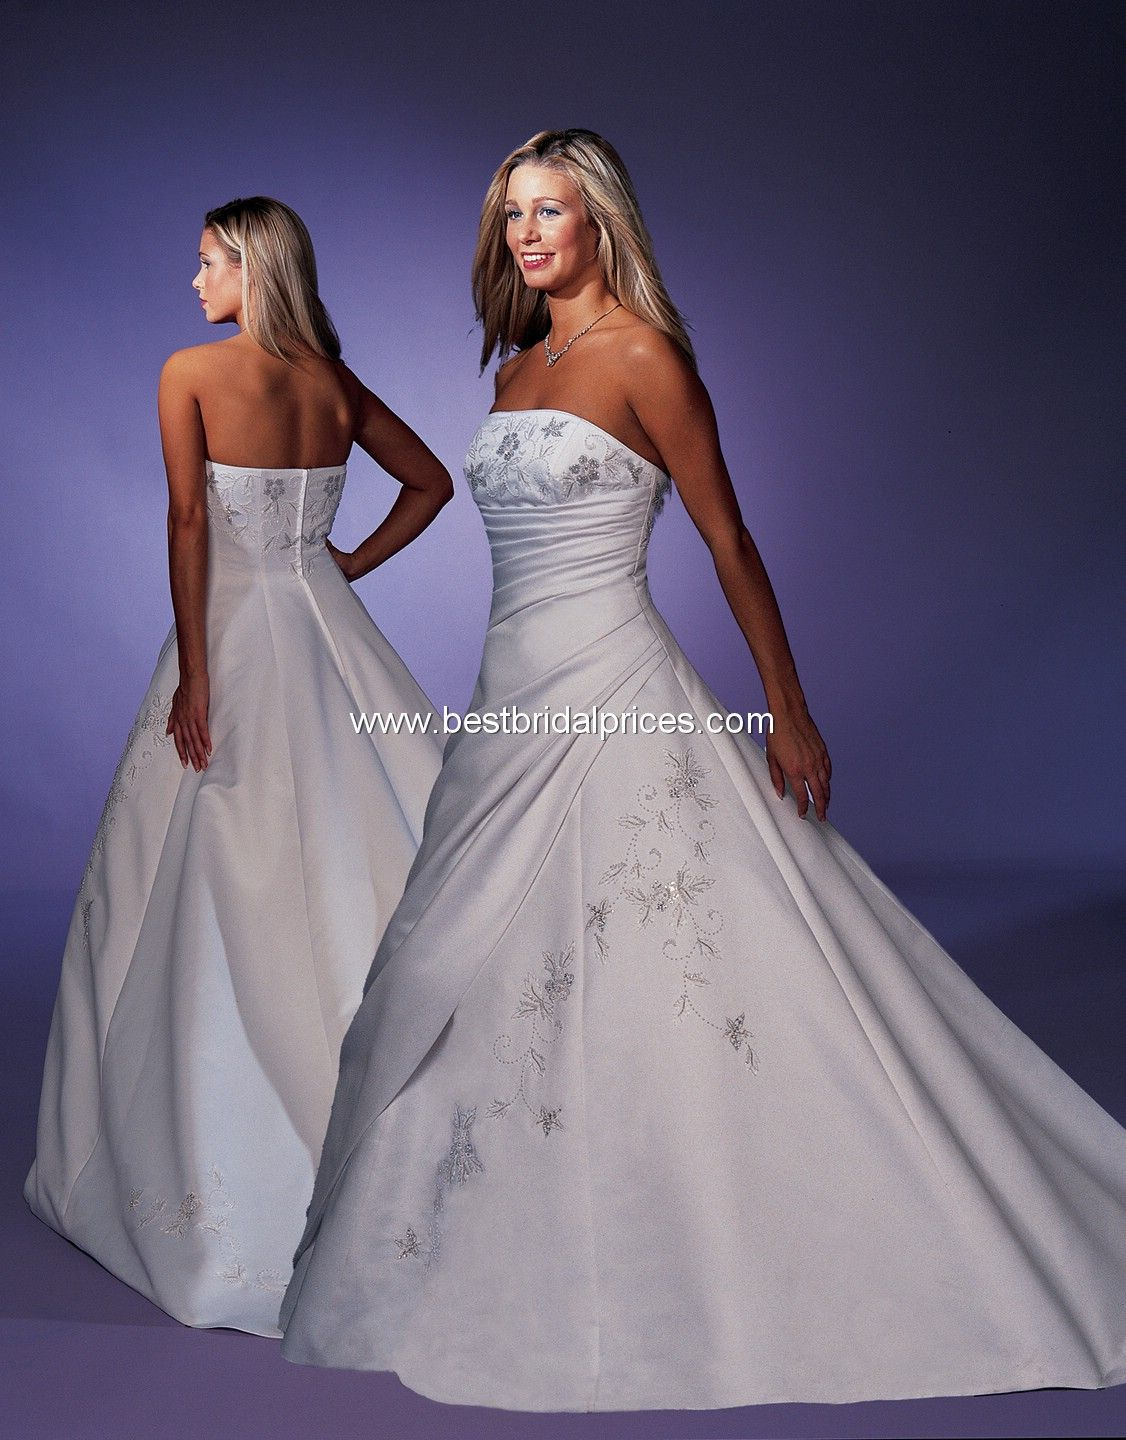 Forever Yours Wedding Dresses Style 42211 Weddings Dresses Pictures Showcase And Reviews By Weddi Wedding Dresses Lace Wedding Dress Train Bridal Dresses